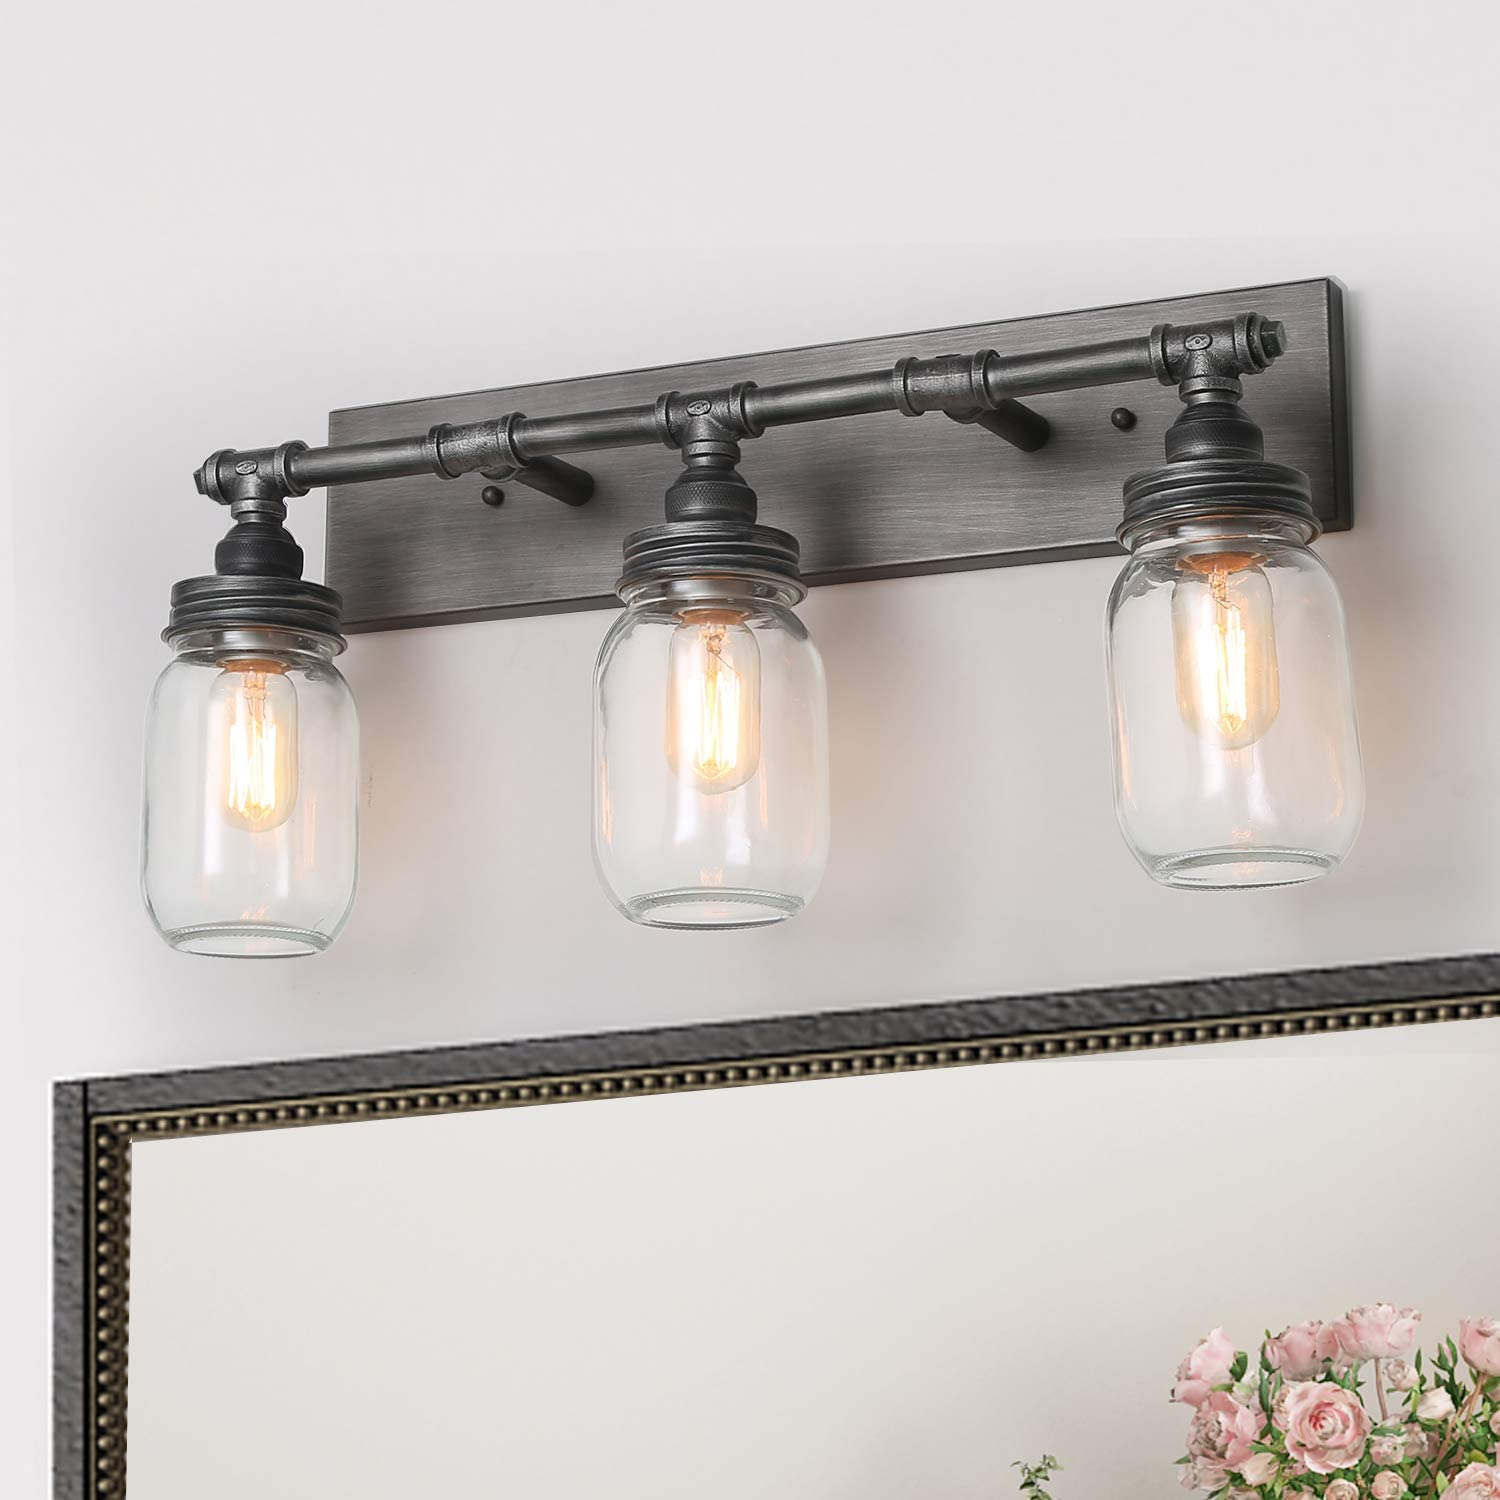 Lnc 24 Large Bathroom Light Fixtures Industrial 3 Mason Jar Vanity Light With Antique Silver Brushed Finish Amazon Com